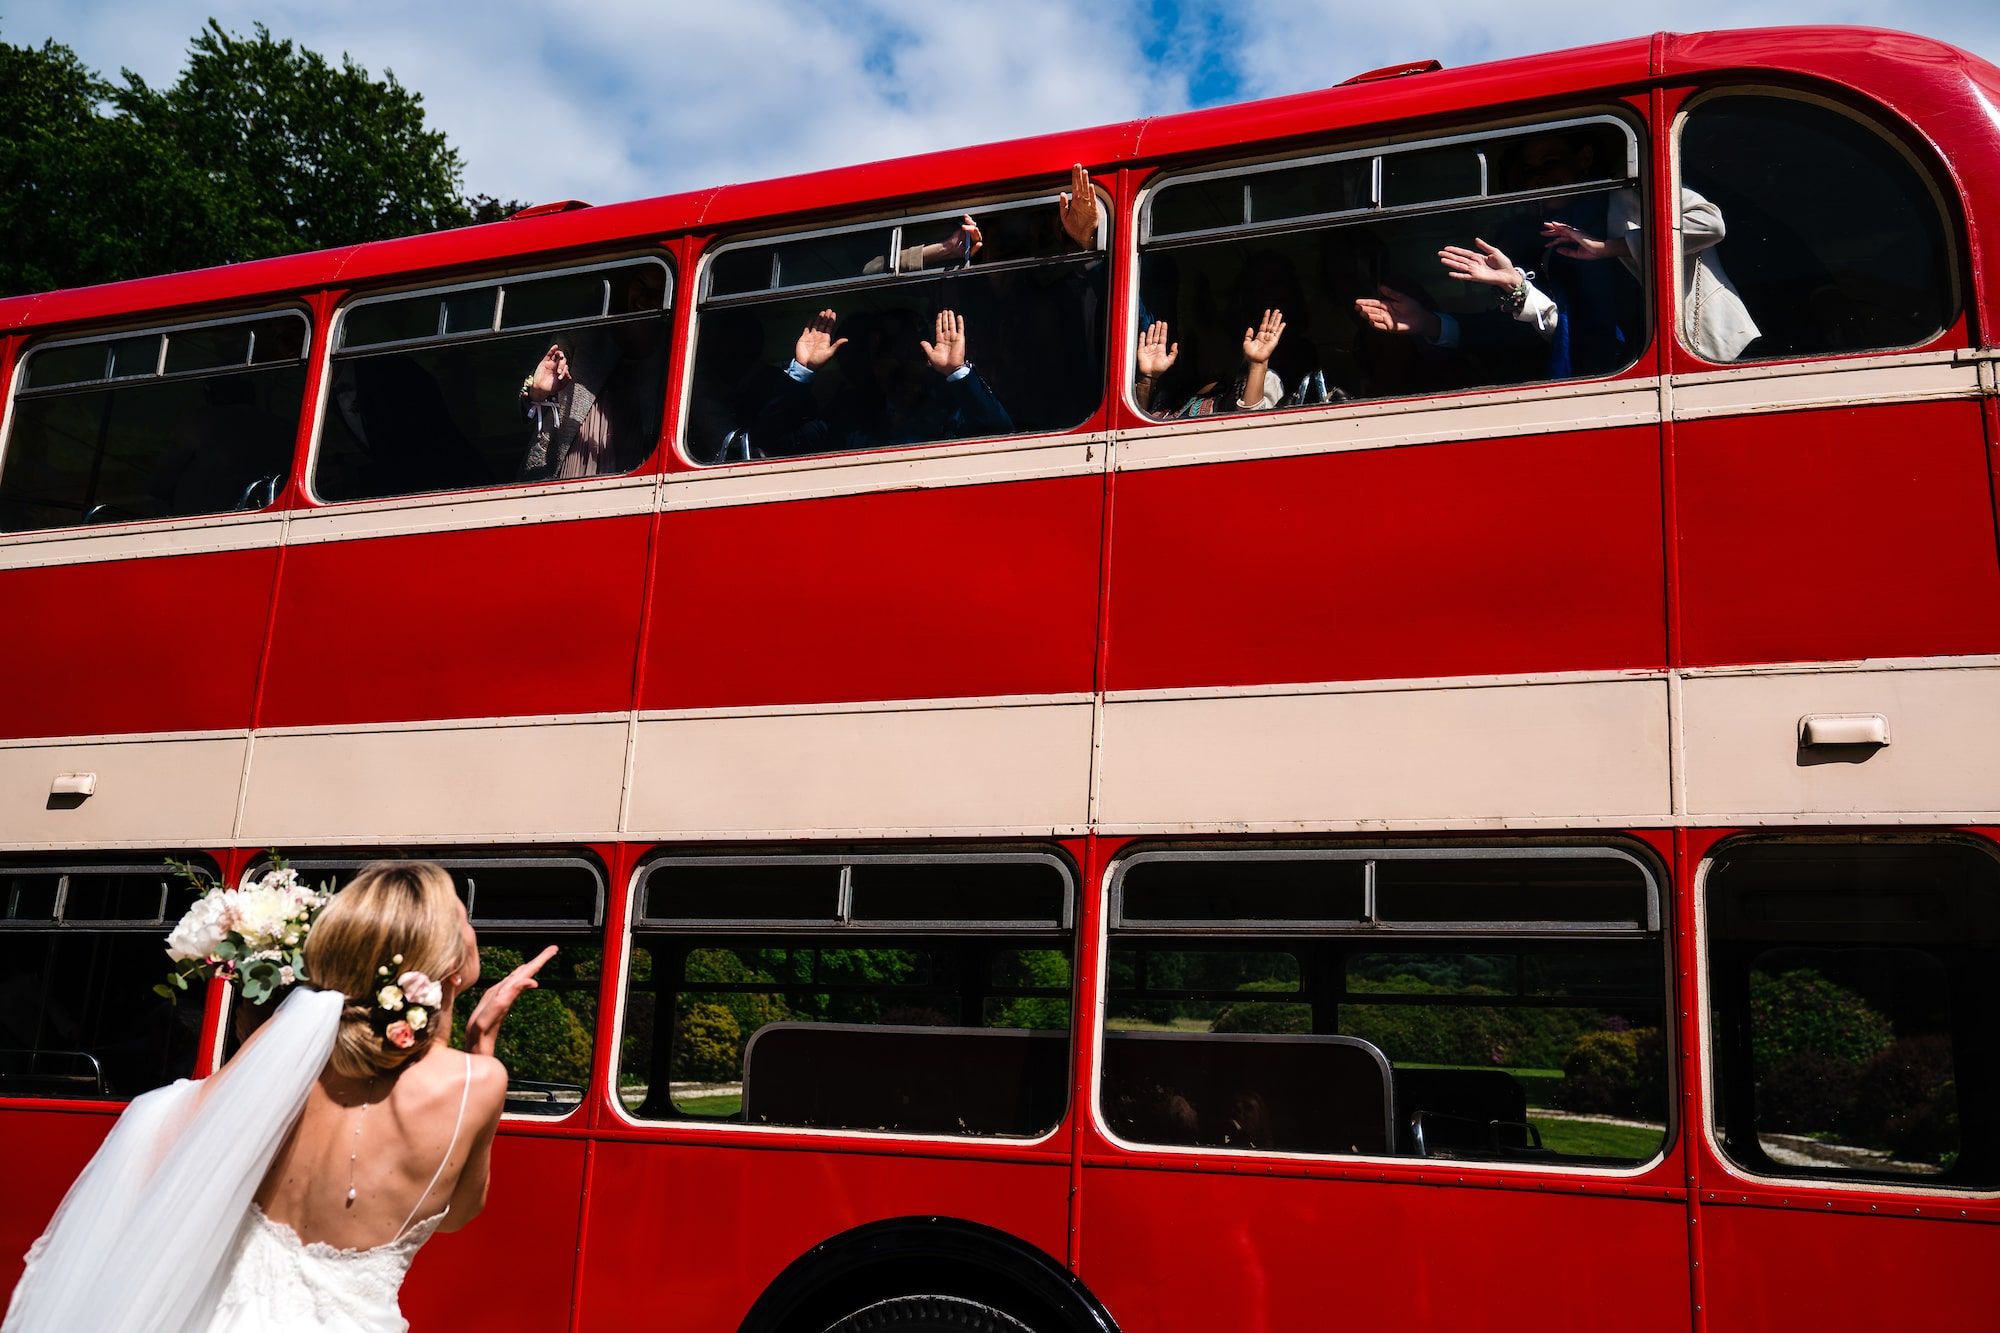 yves schepers sony alpha 9 a bride blowing her groomsmen a kiss as they sit on a red bus